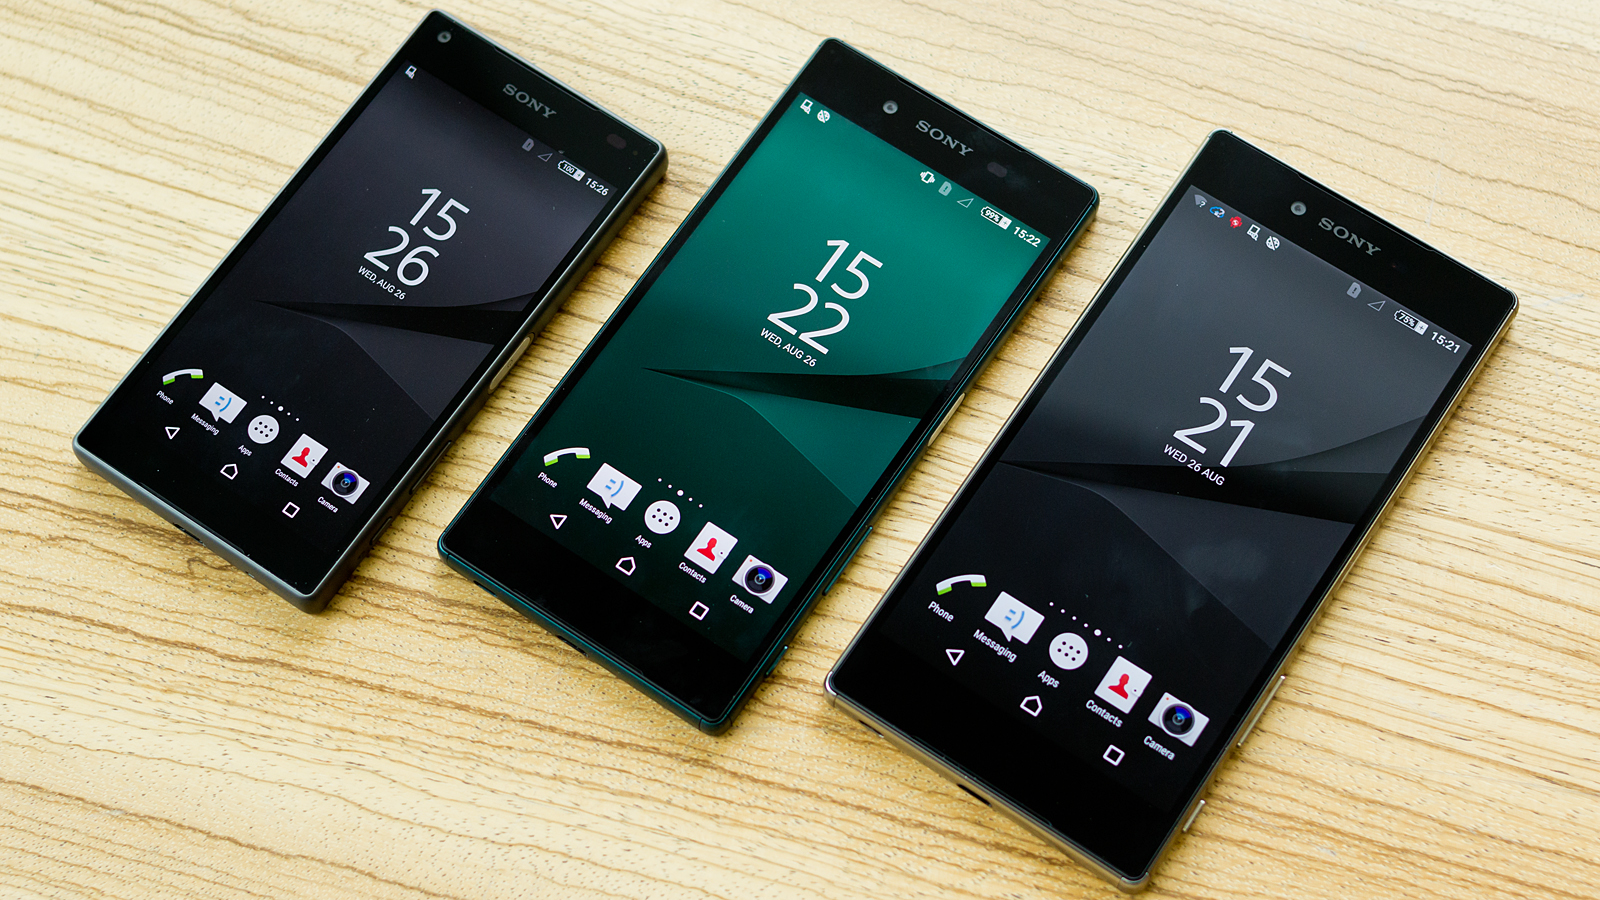 Best Phone 2015: The 8 Best Smartphones We Reviewed